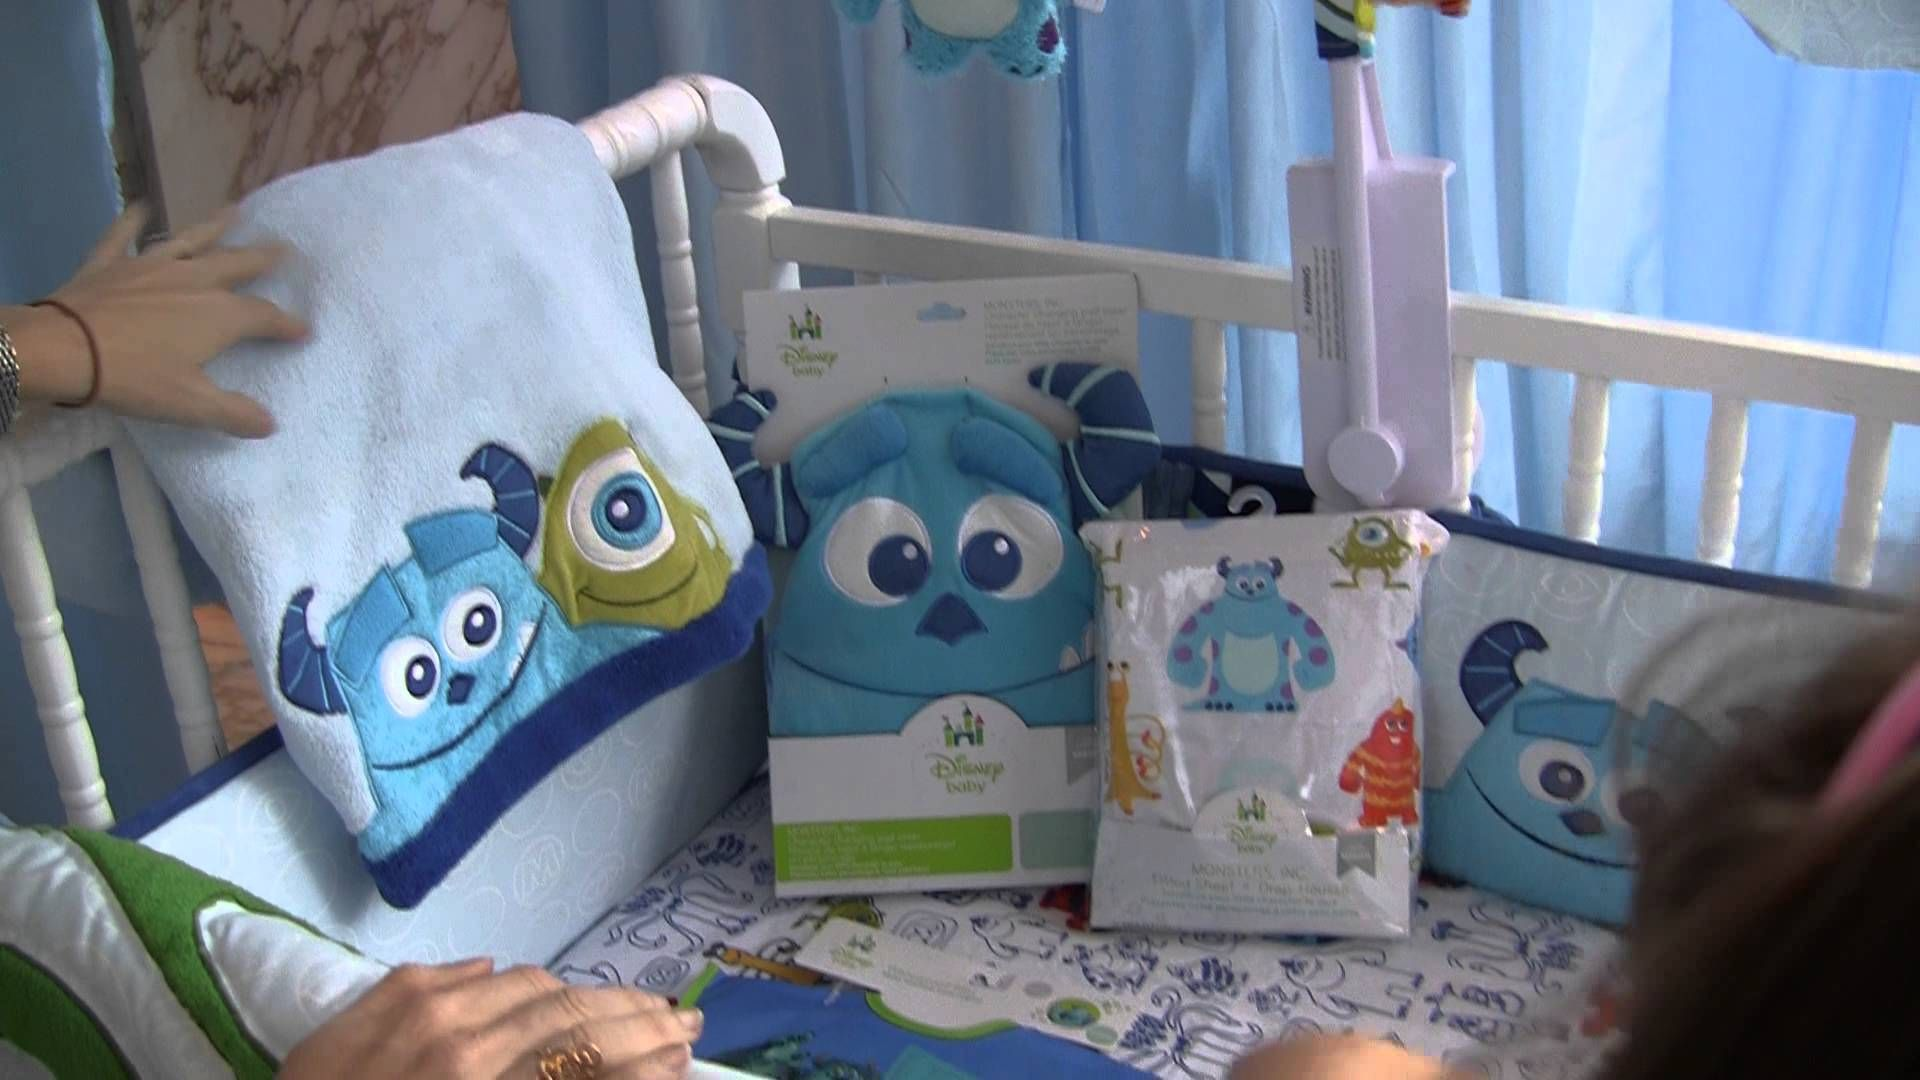 Pin By Samantha Oerlemans On For Ezra Monsters Inc Baby